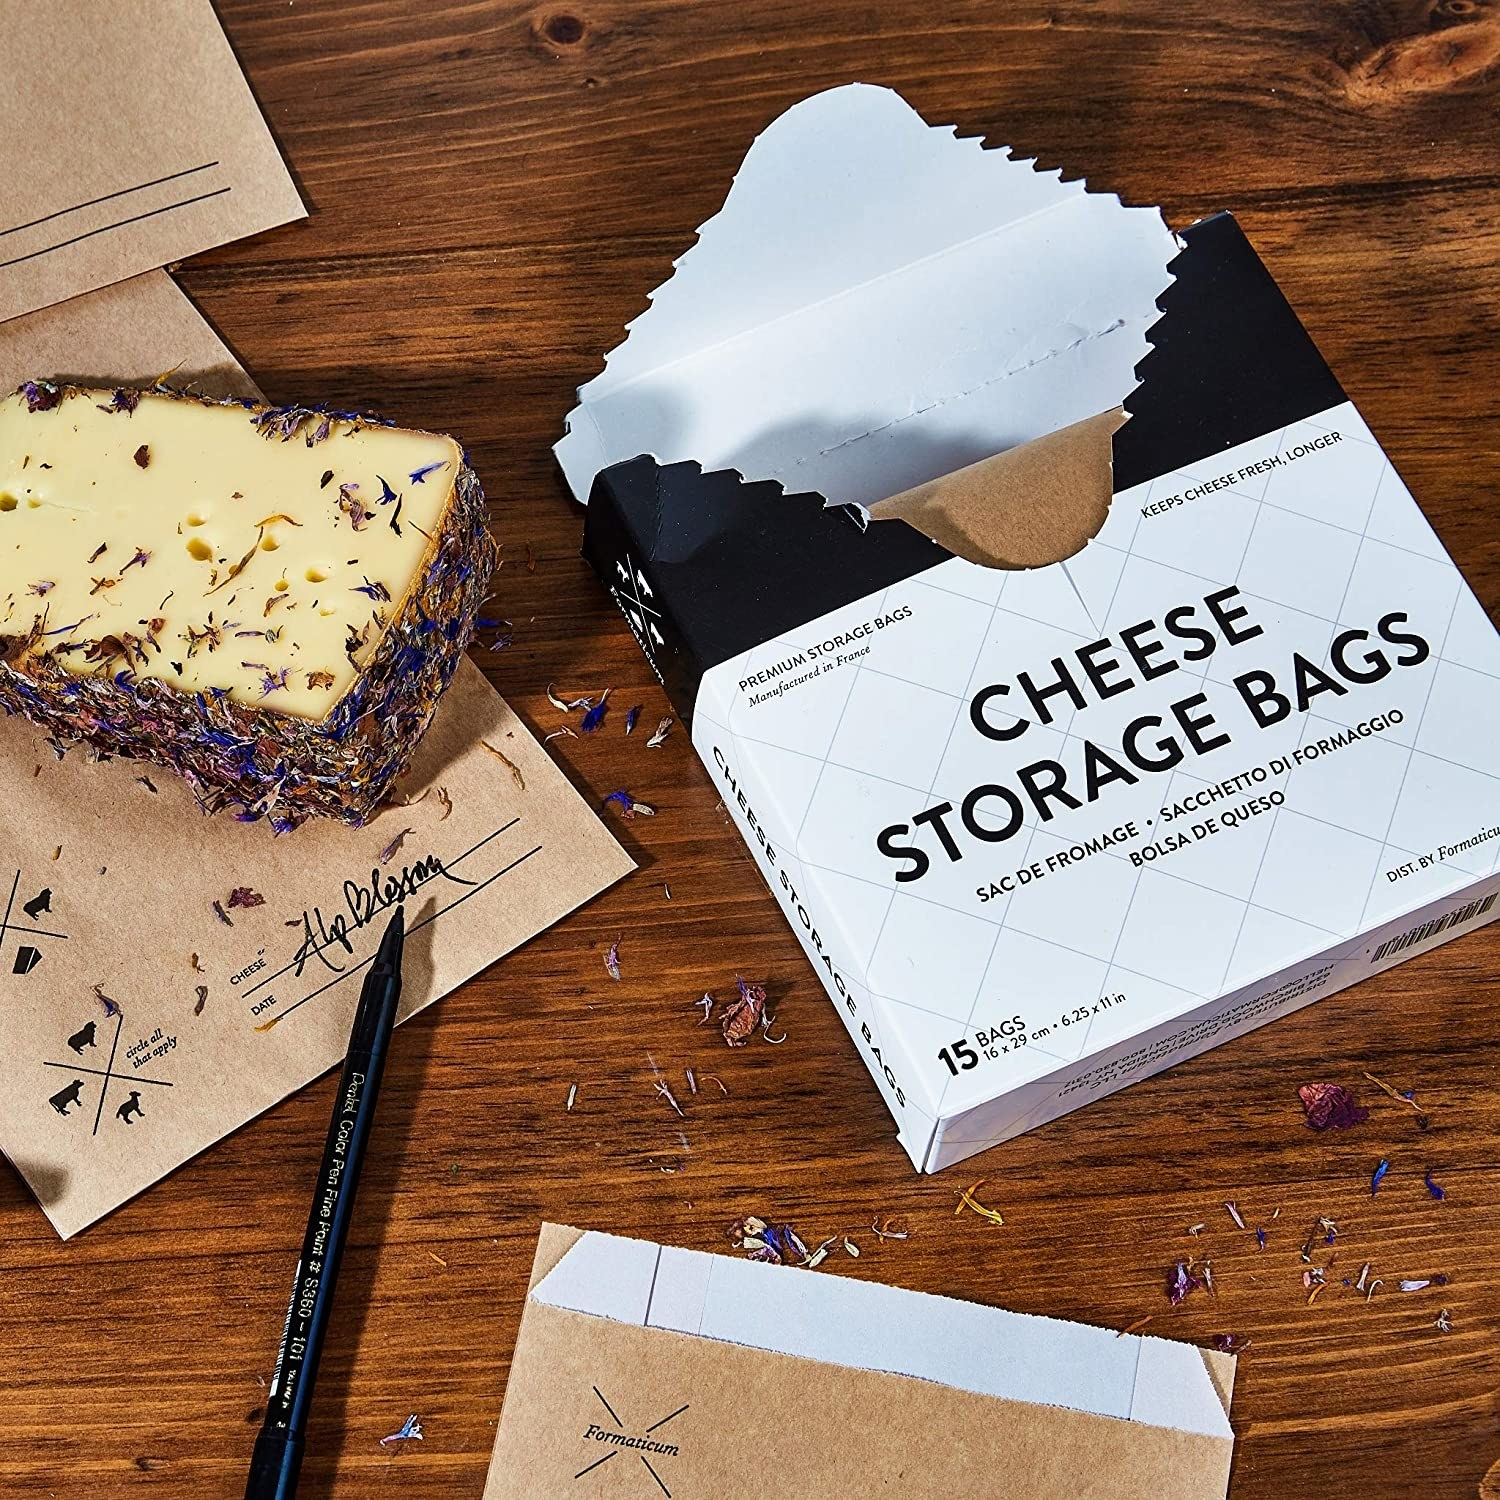 An open pack of cheese storage bags next to a wedge of cheese